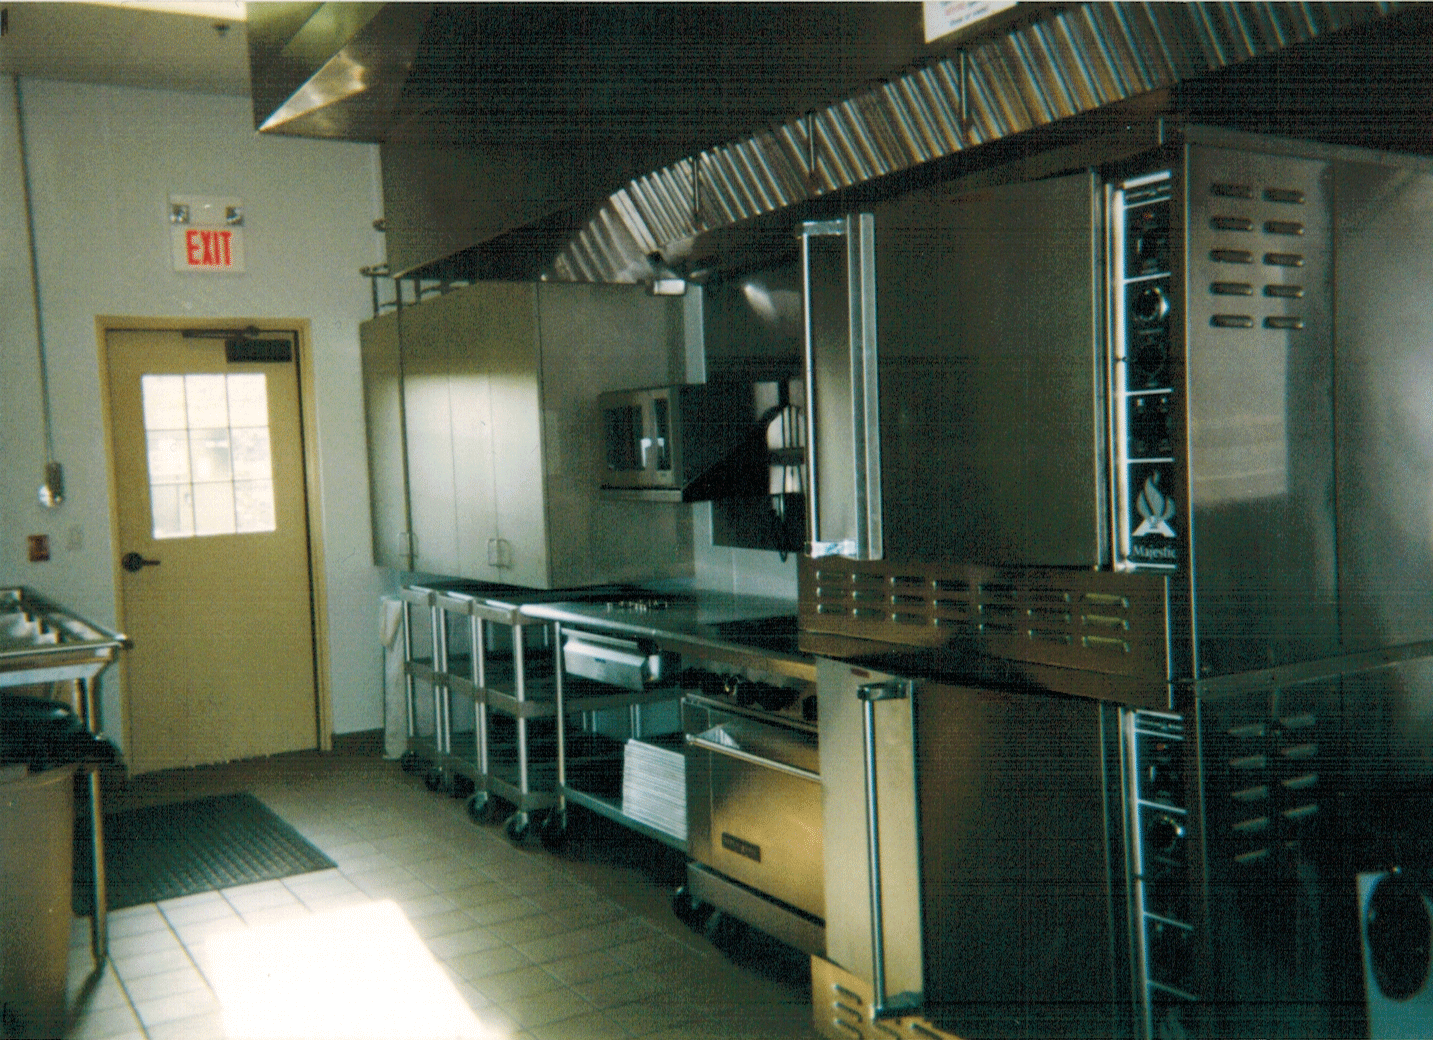 https://0201.nccdn.net/1_2/000/000/10a/bc9/kitchen04.png